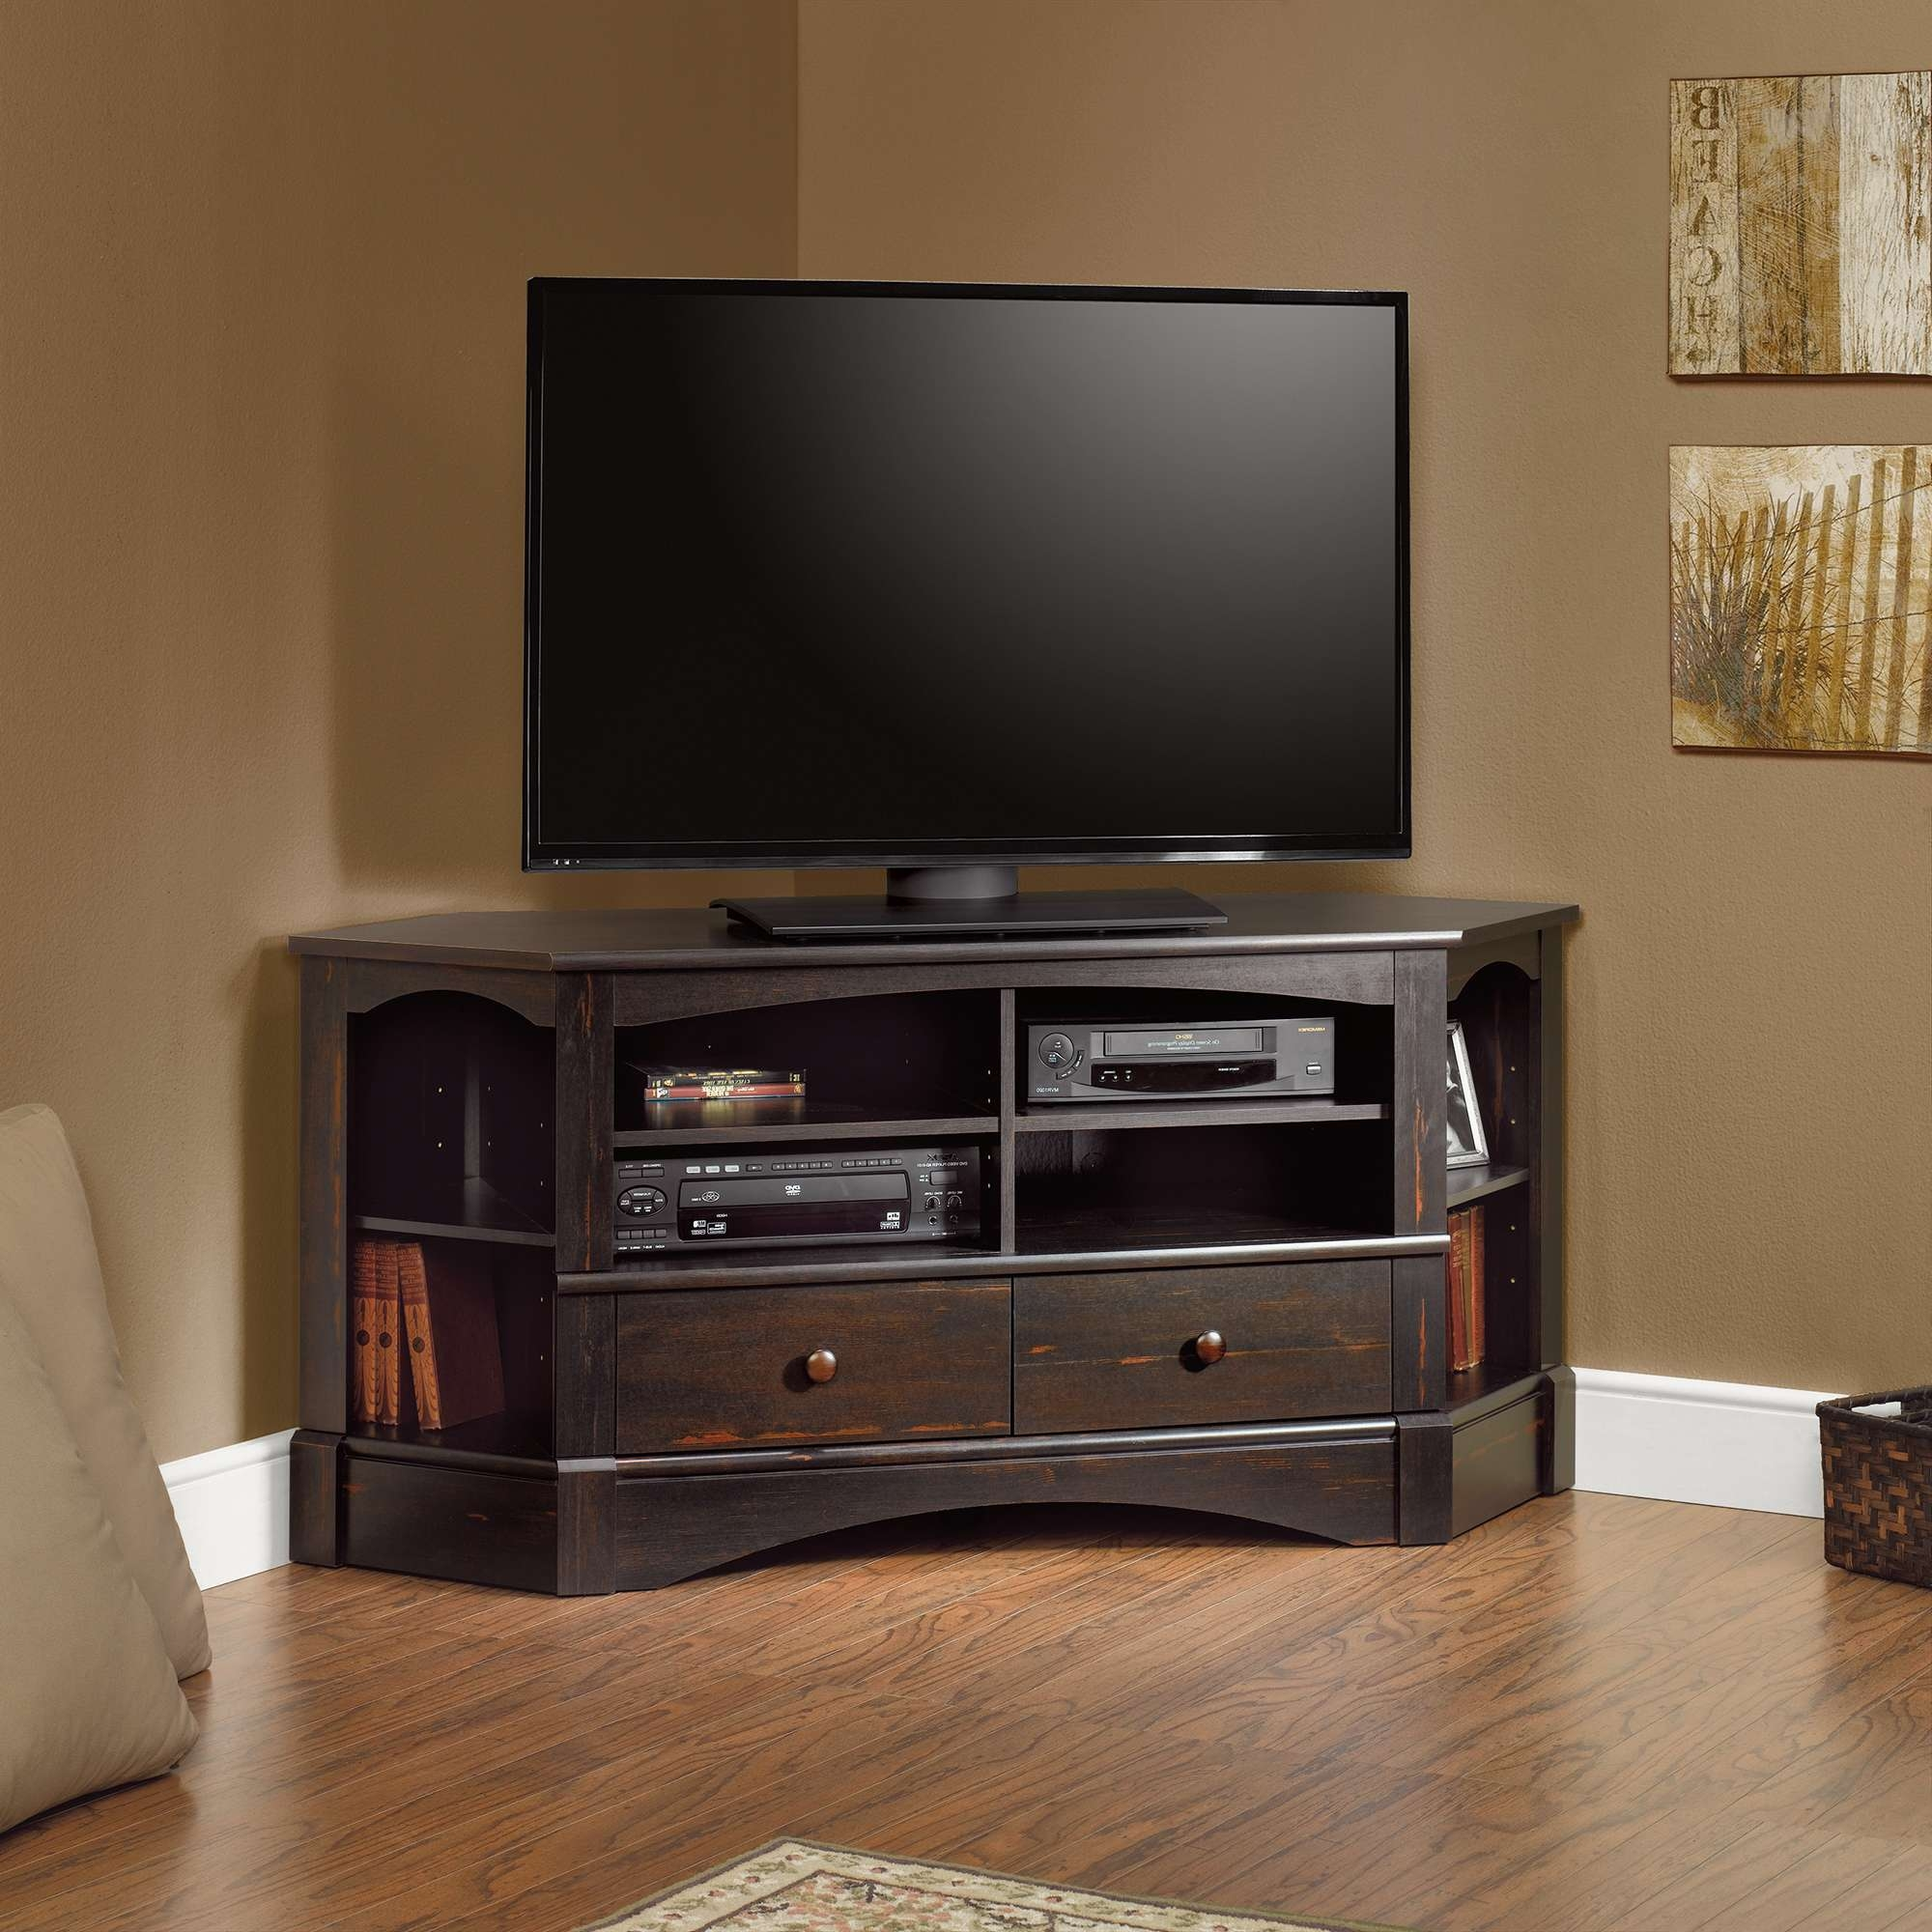 Harbor View | Corner Entertainment Credenza | 402902 | Sauder Intended For Wood Corner Tv Cabinets (View 4 of 20)